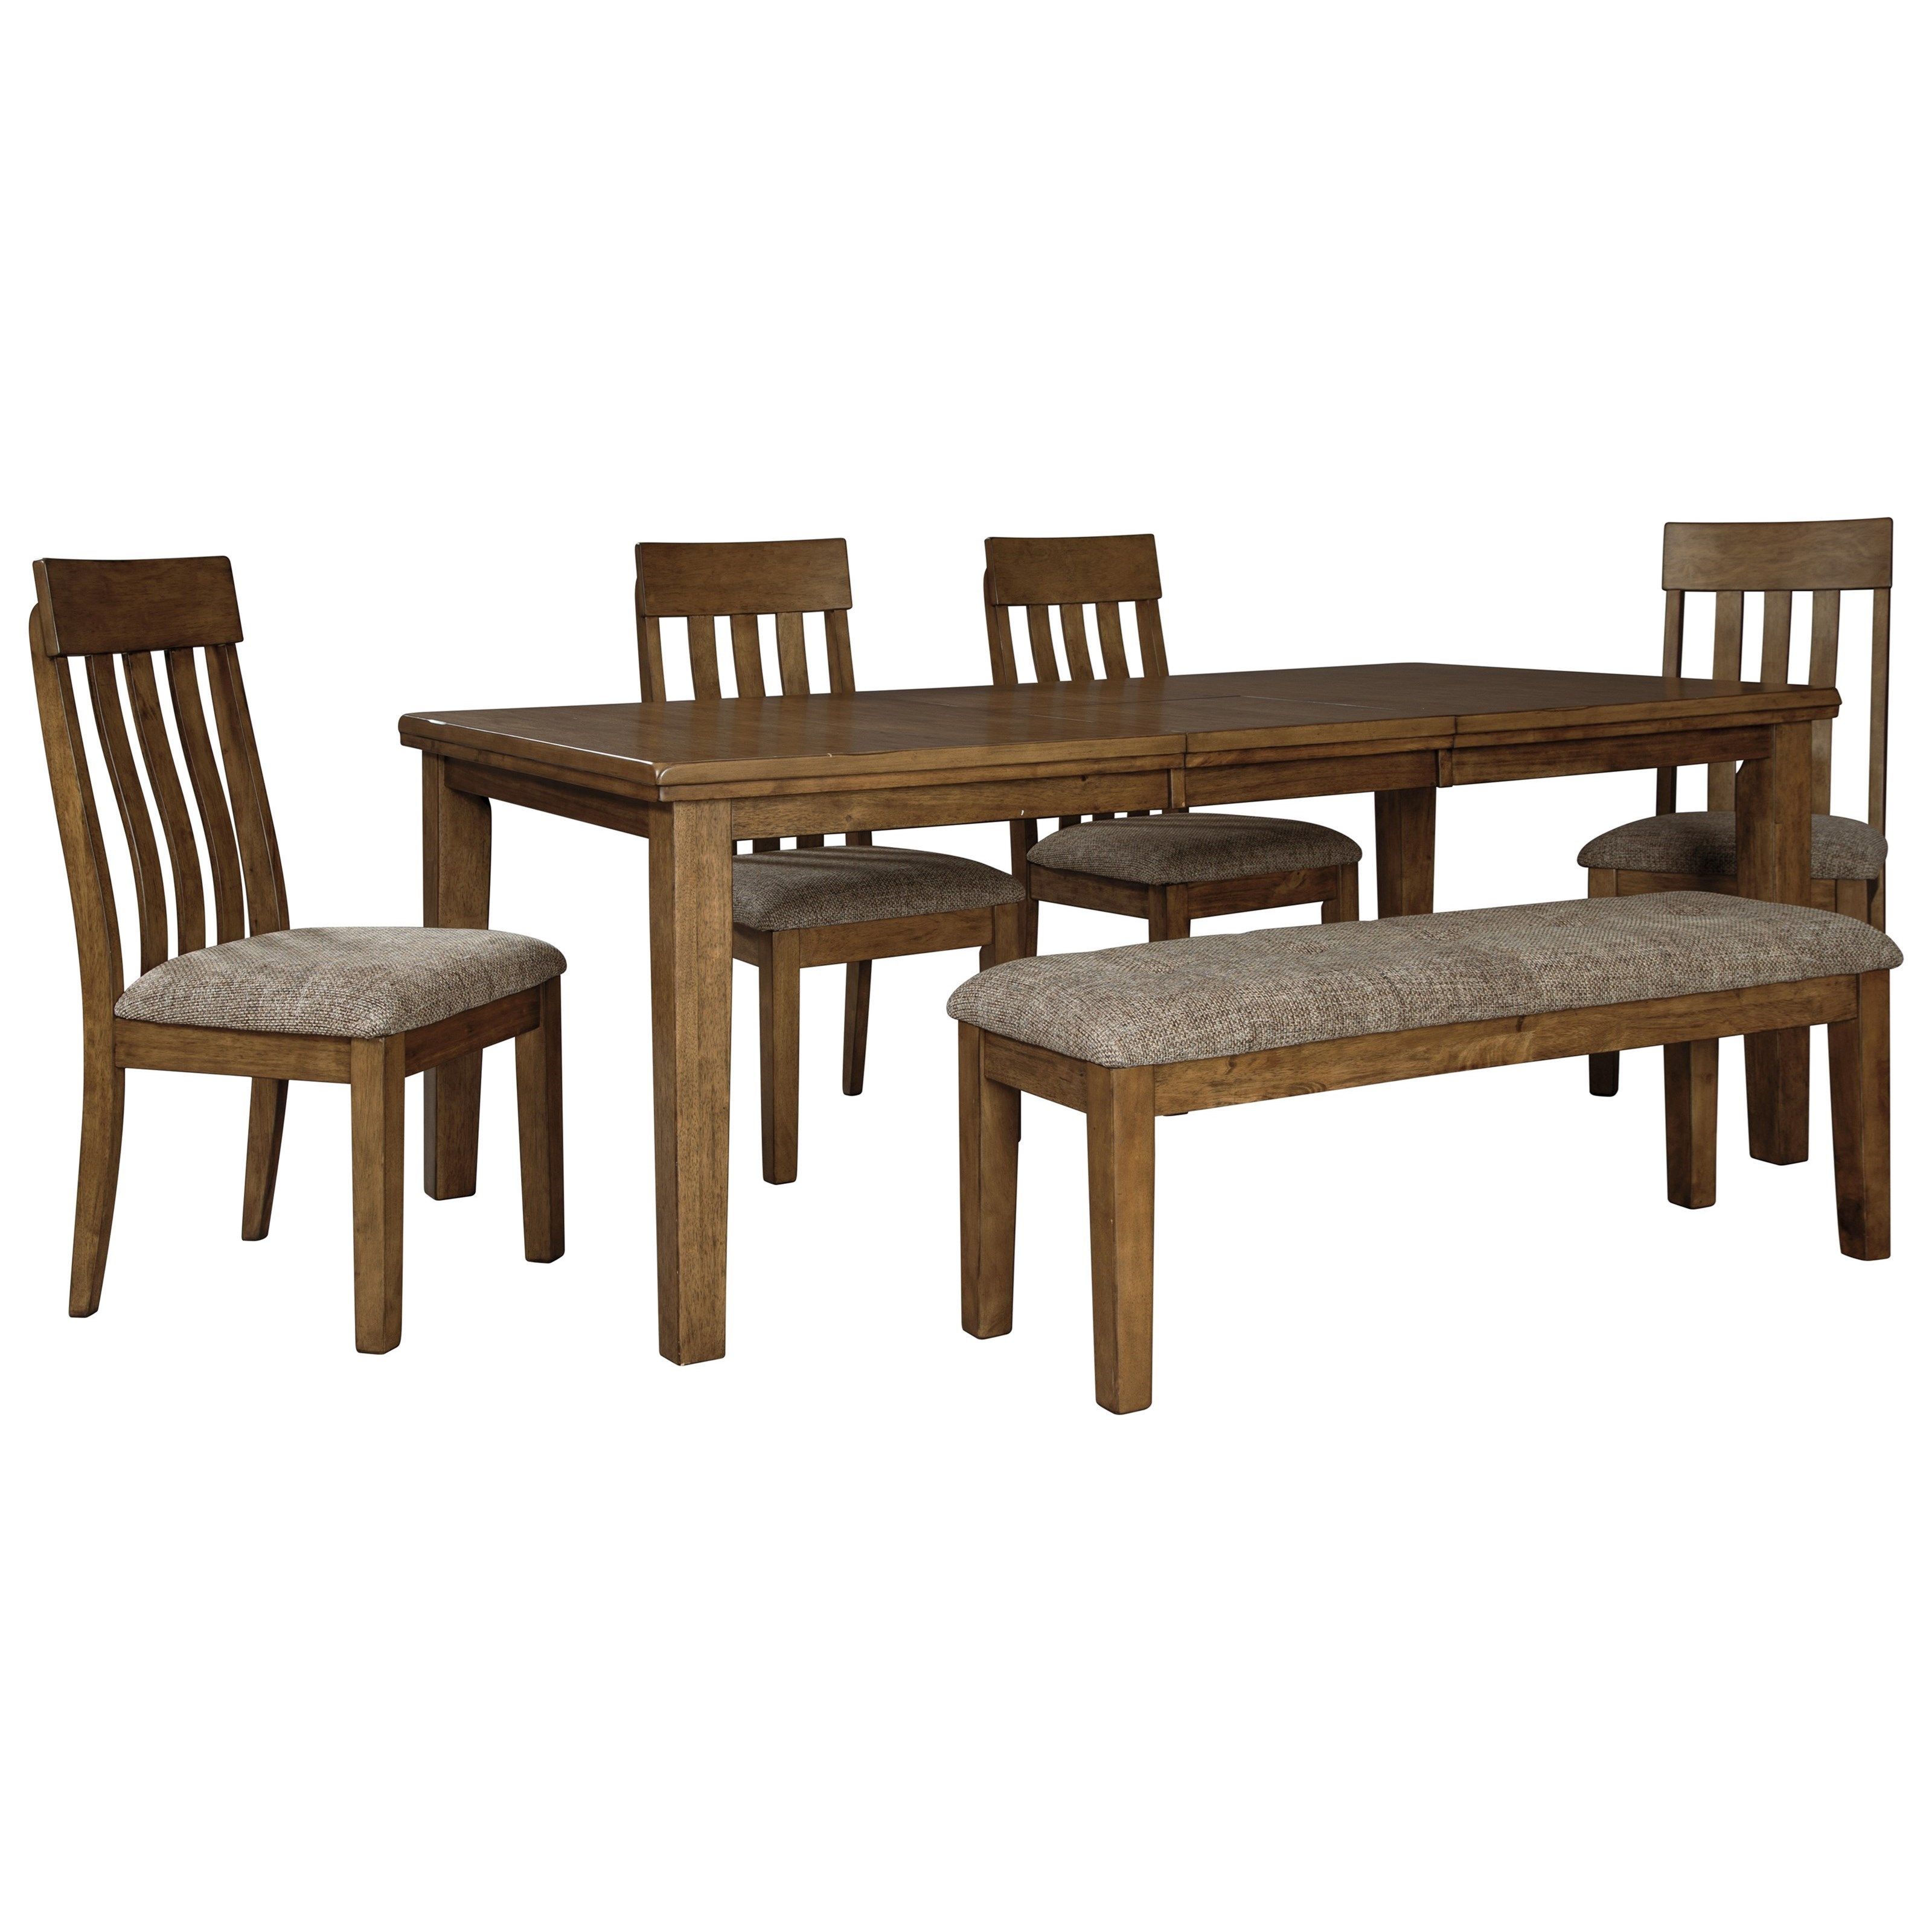 Flaybern 6-Piece Table and Chair Set by Benchcraft at Walker's Furniture